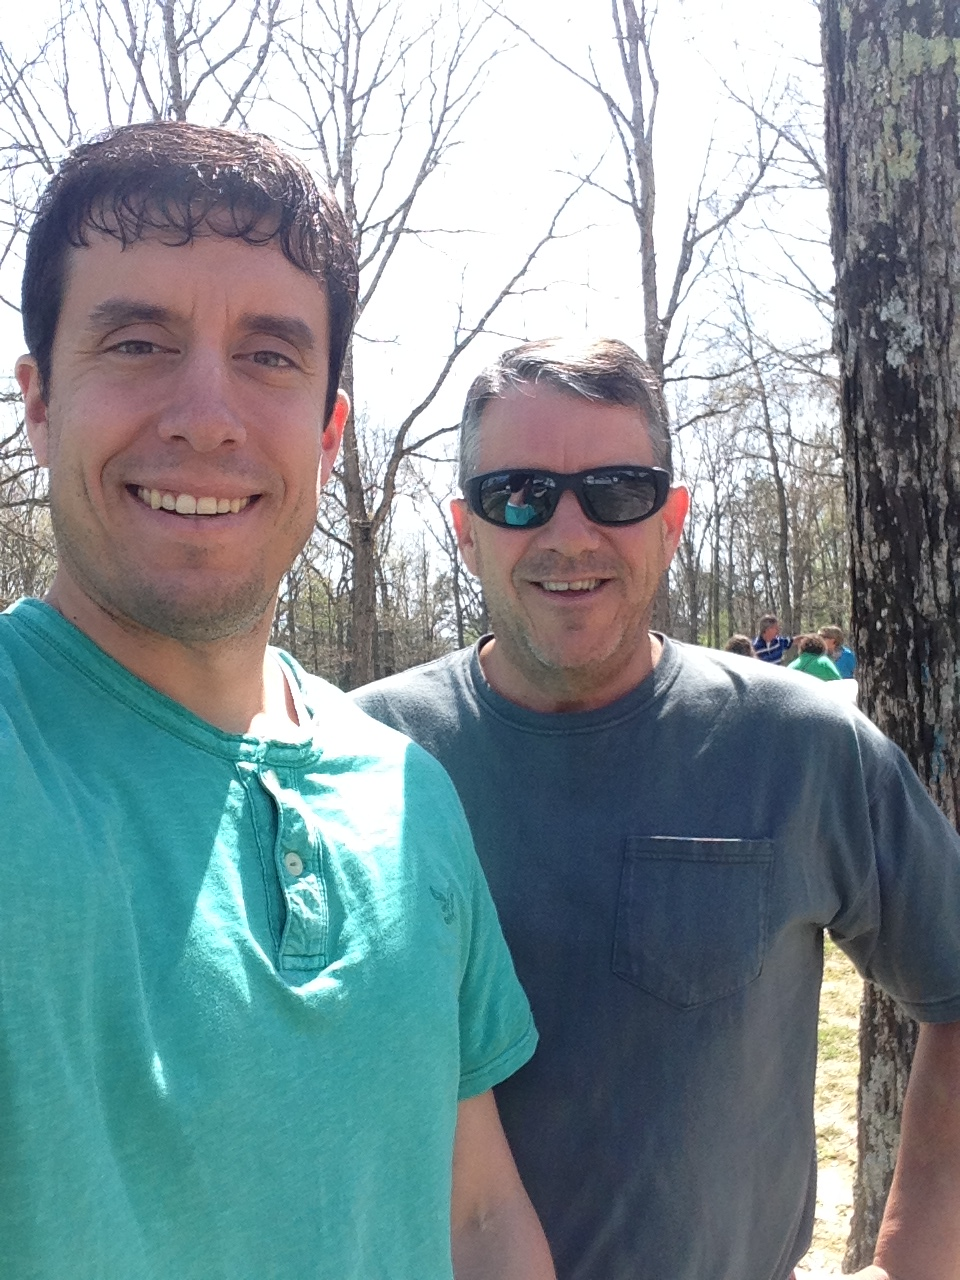 My dad and I outside a rest stop in Tennessee today.